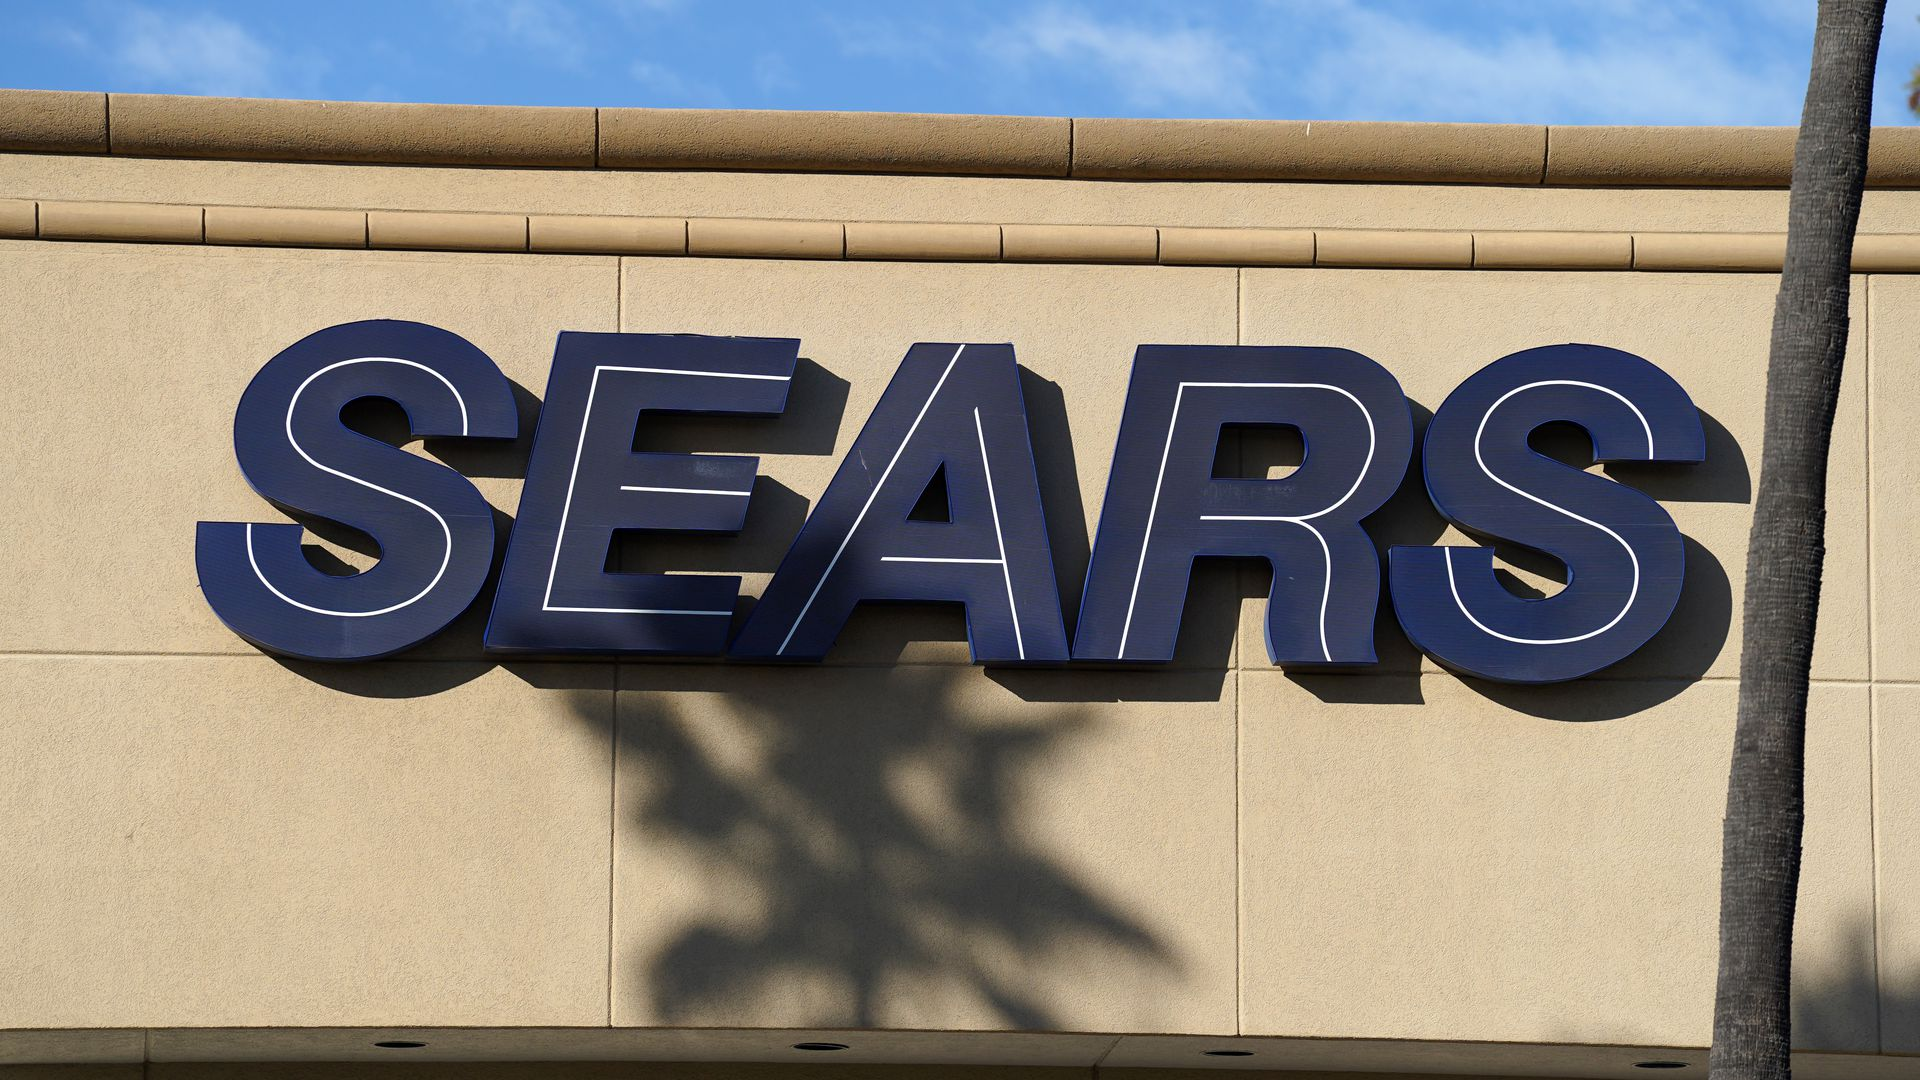 Sears sues ex-CEO, Steven Mnuchin and others, claiming asset-stripping drove bankruptcy